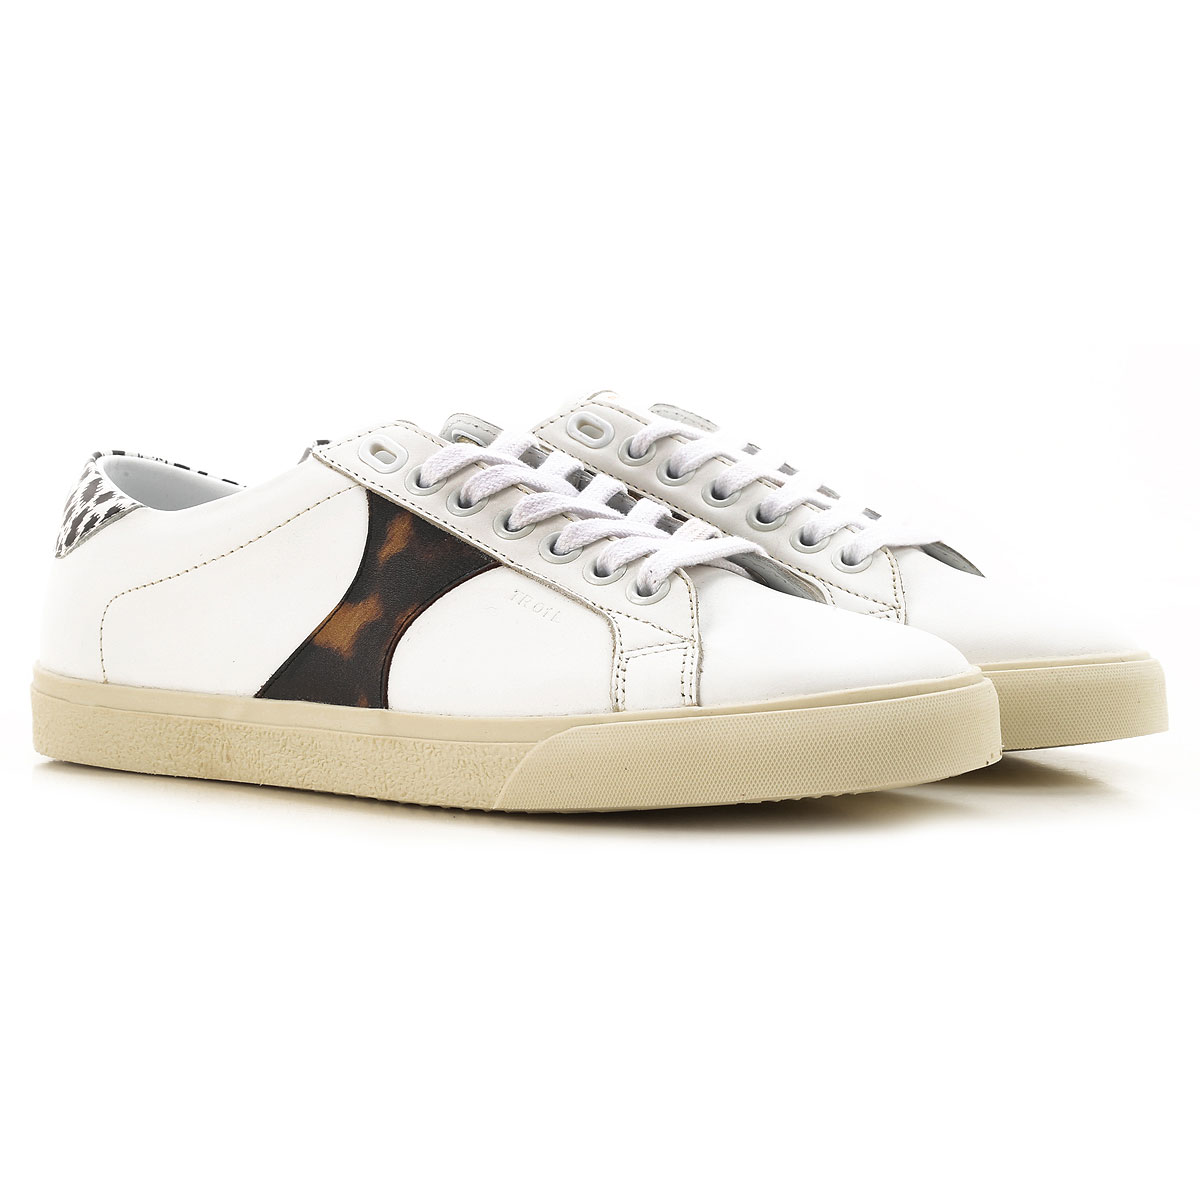 Celine Sneakers for Women On Sale, White, Leather, 2019, 10 5 6 7 8 9